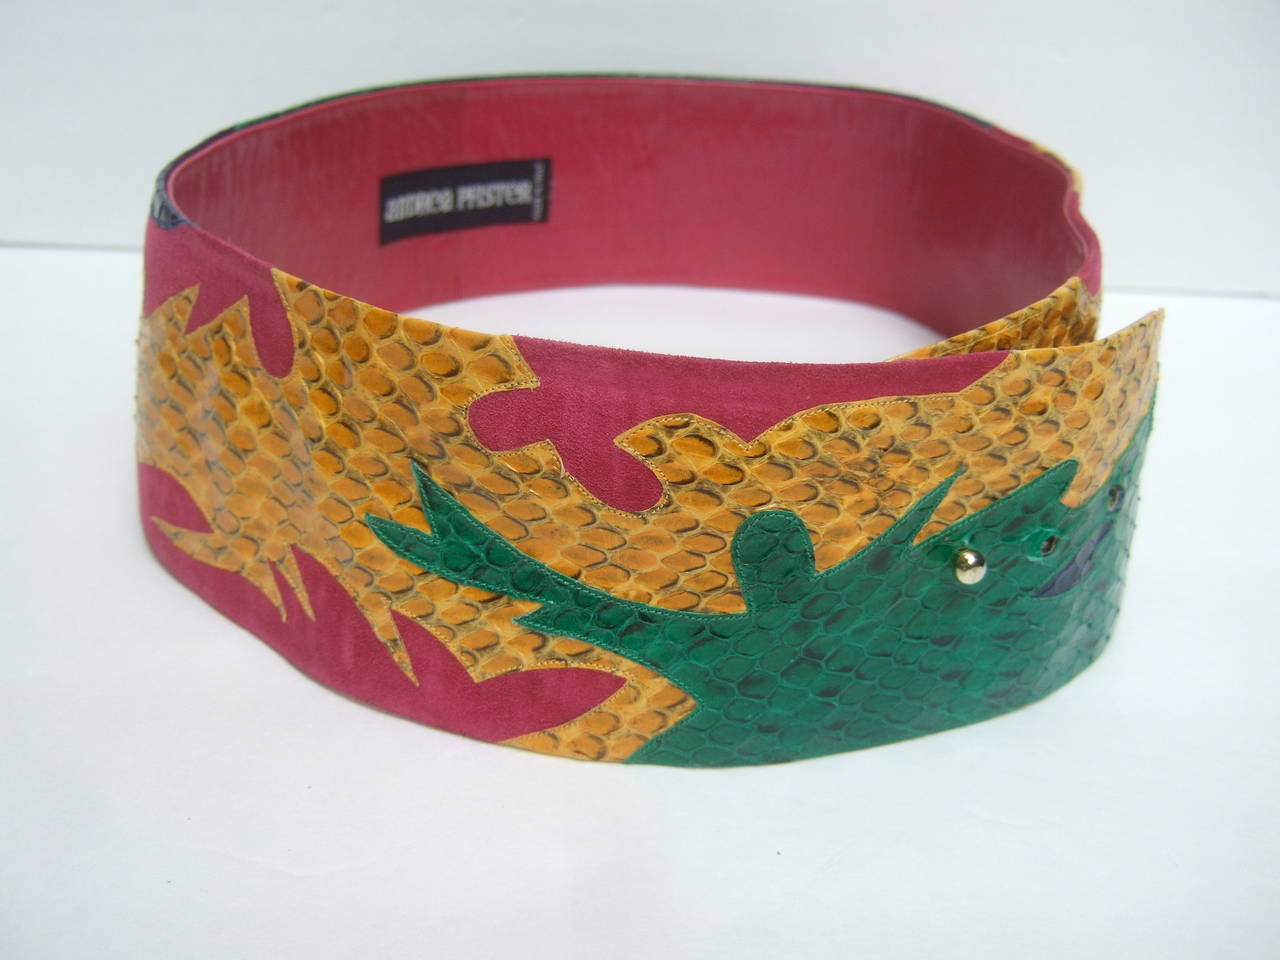 Exotic Italian Wide Snakeskin Fuchsia Suede Belt c 1980s For Sale 1